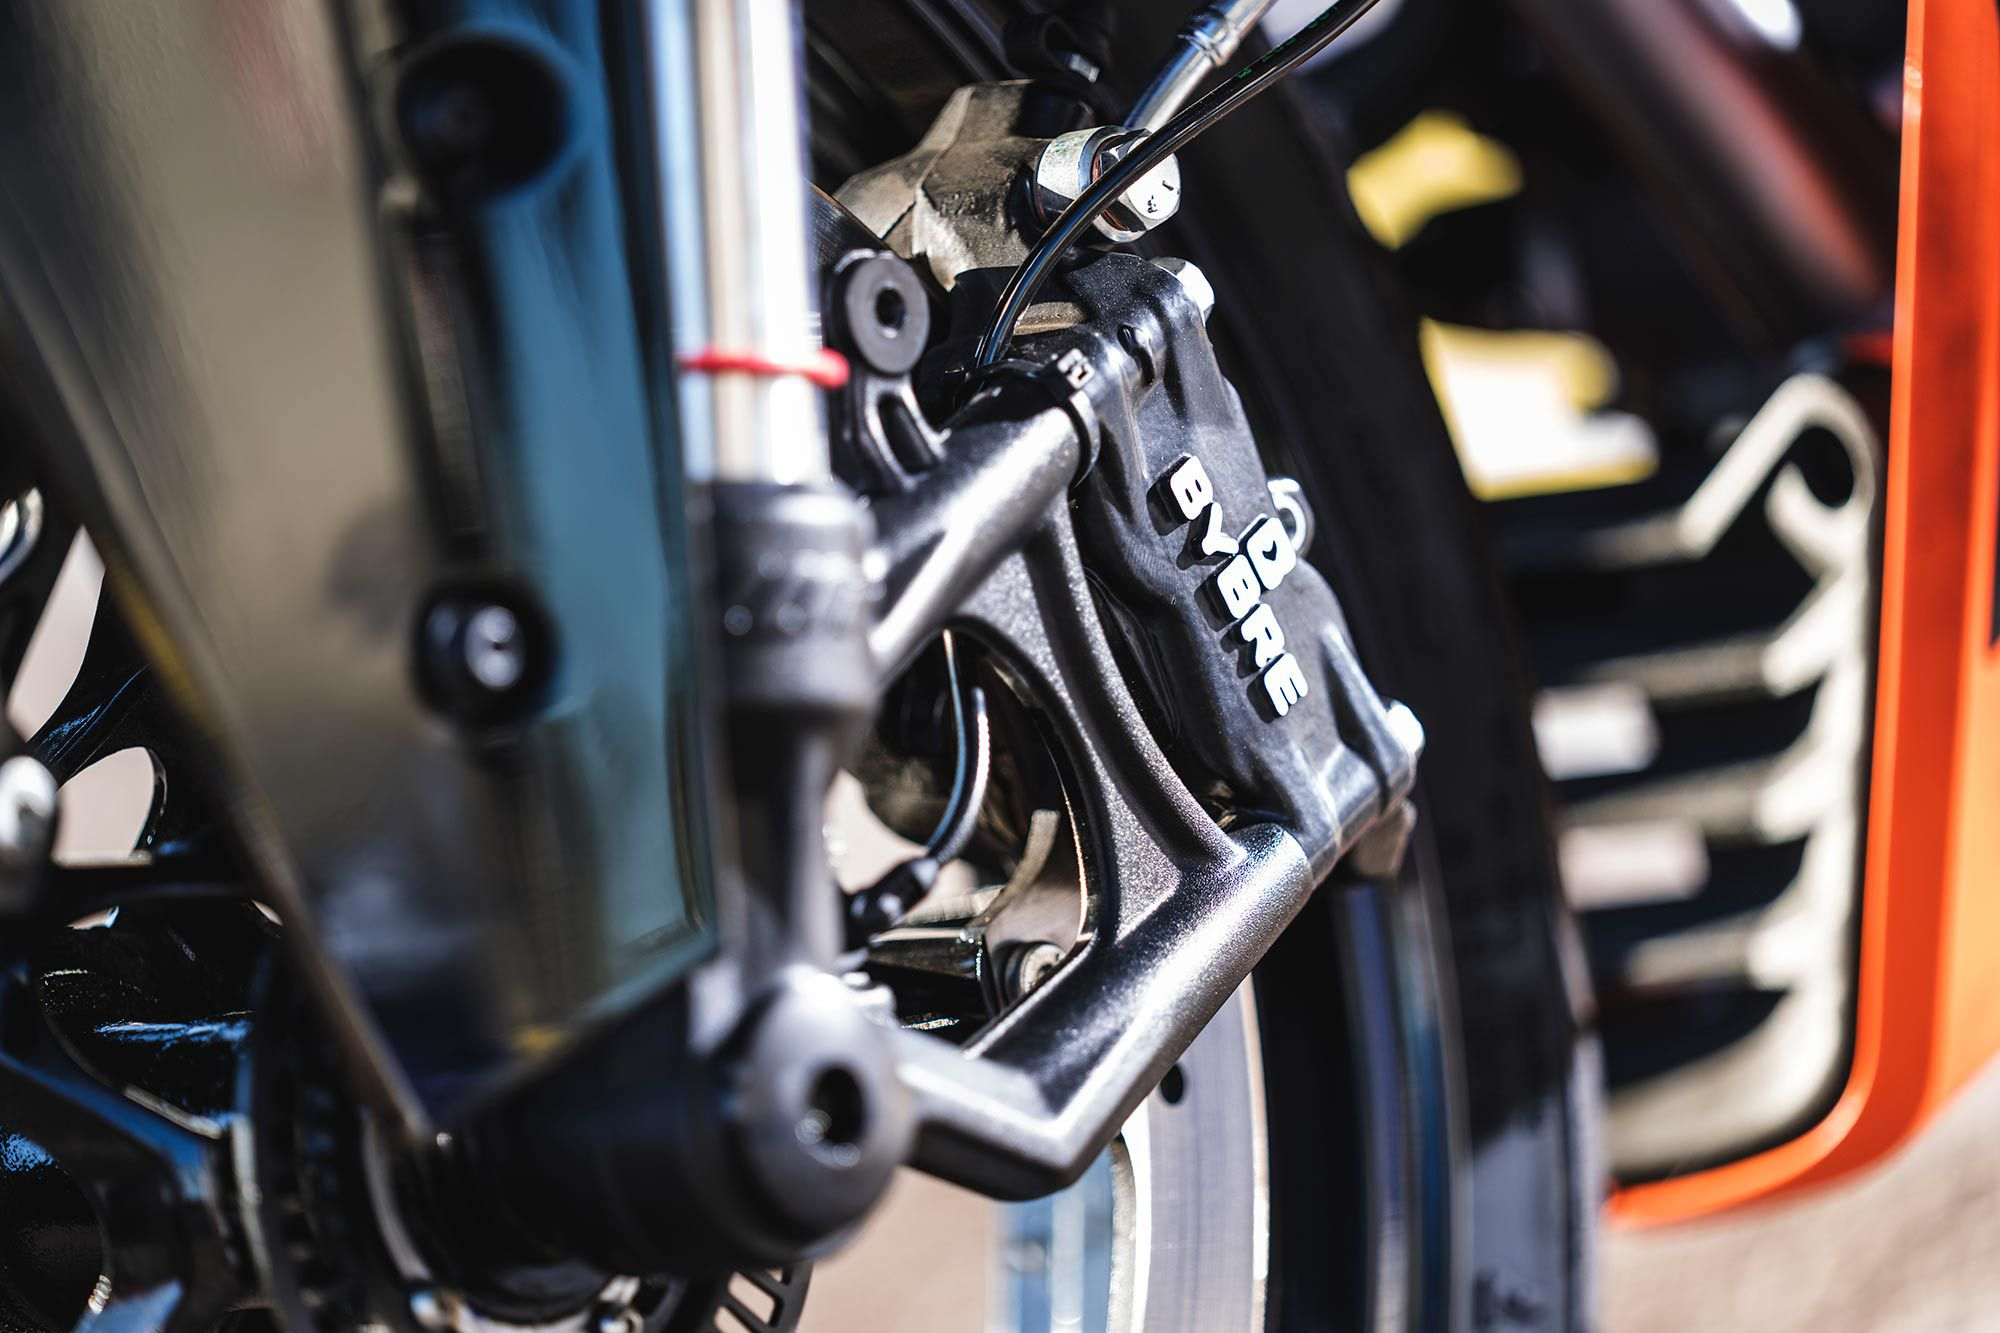 Suspension is provided by WP with a 43mm fork featuring compression adjustment (30 clicks) and rebound adjustment (also 30 clicks).